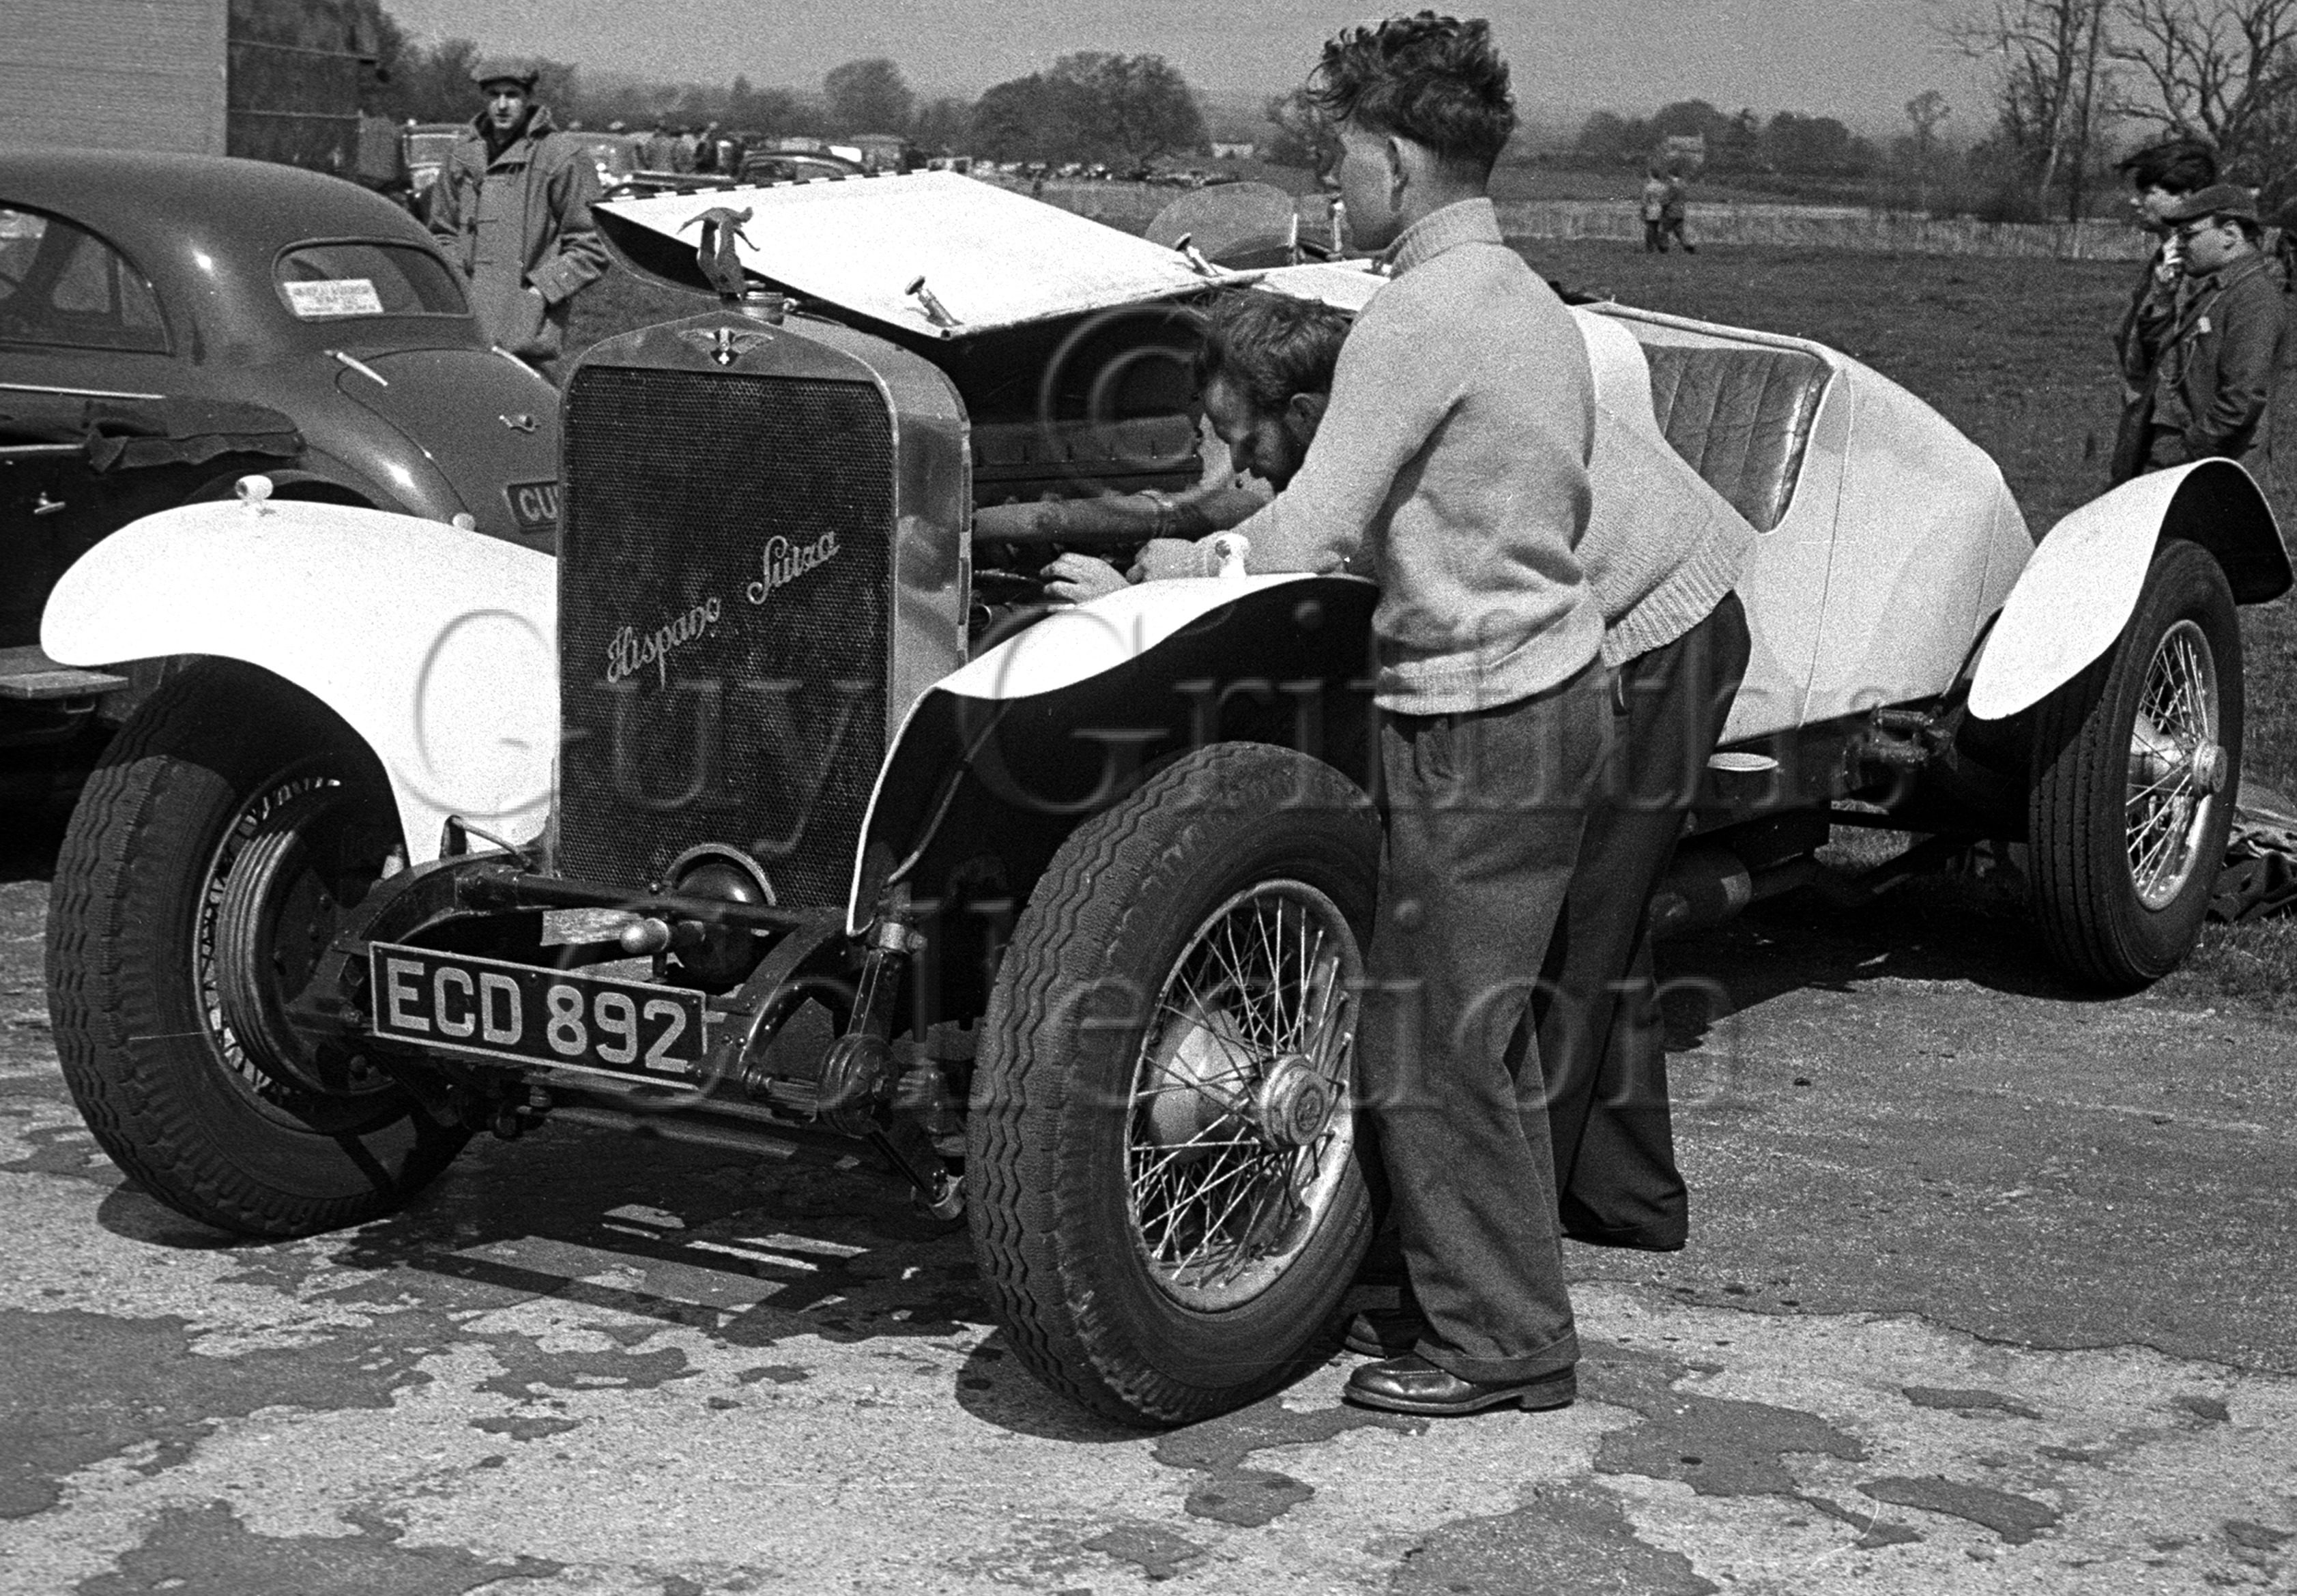 68-342–M-Scott–Hispano-Suiza-Morin-Scott–Silverstone–02-05-1953.jpg - The Guy Griffiths Collection